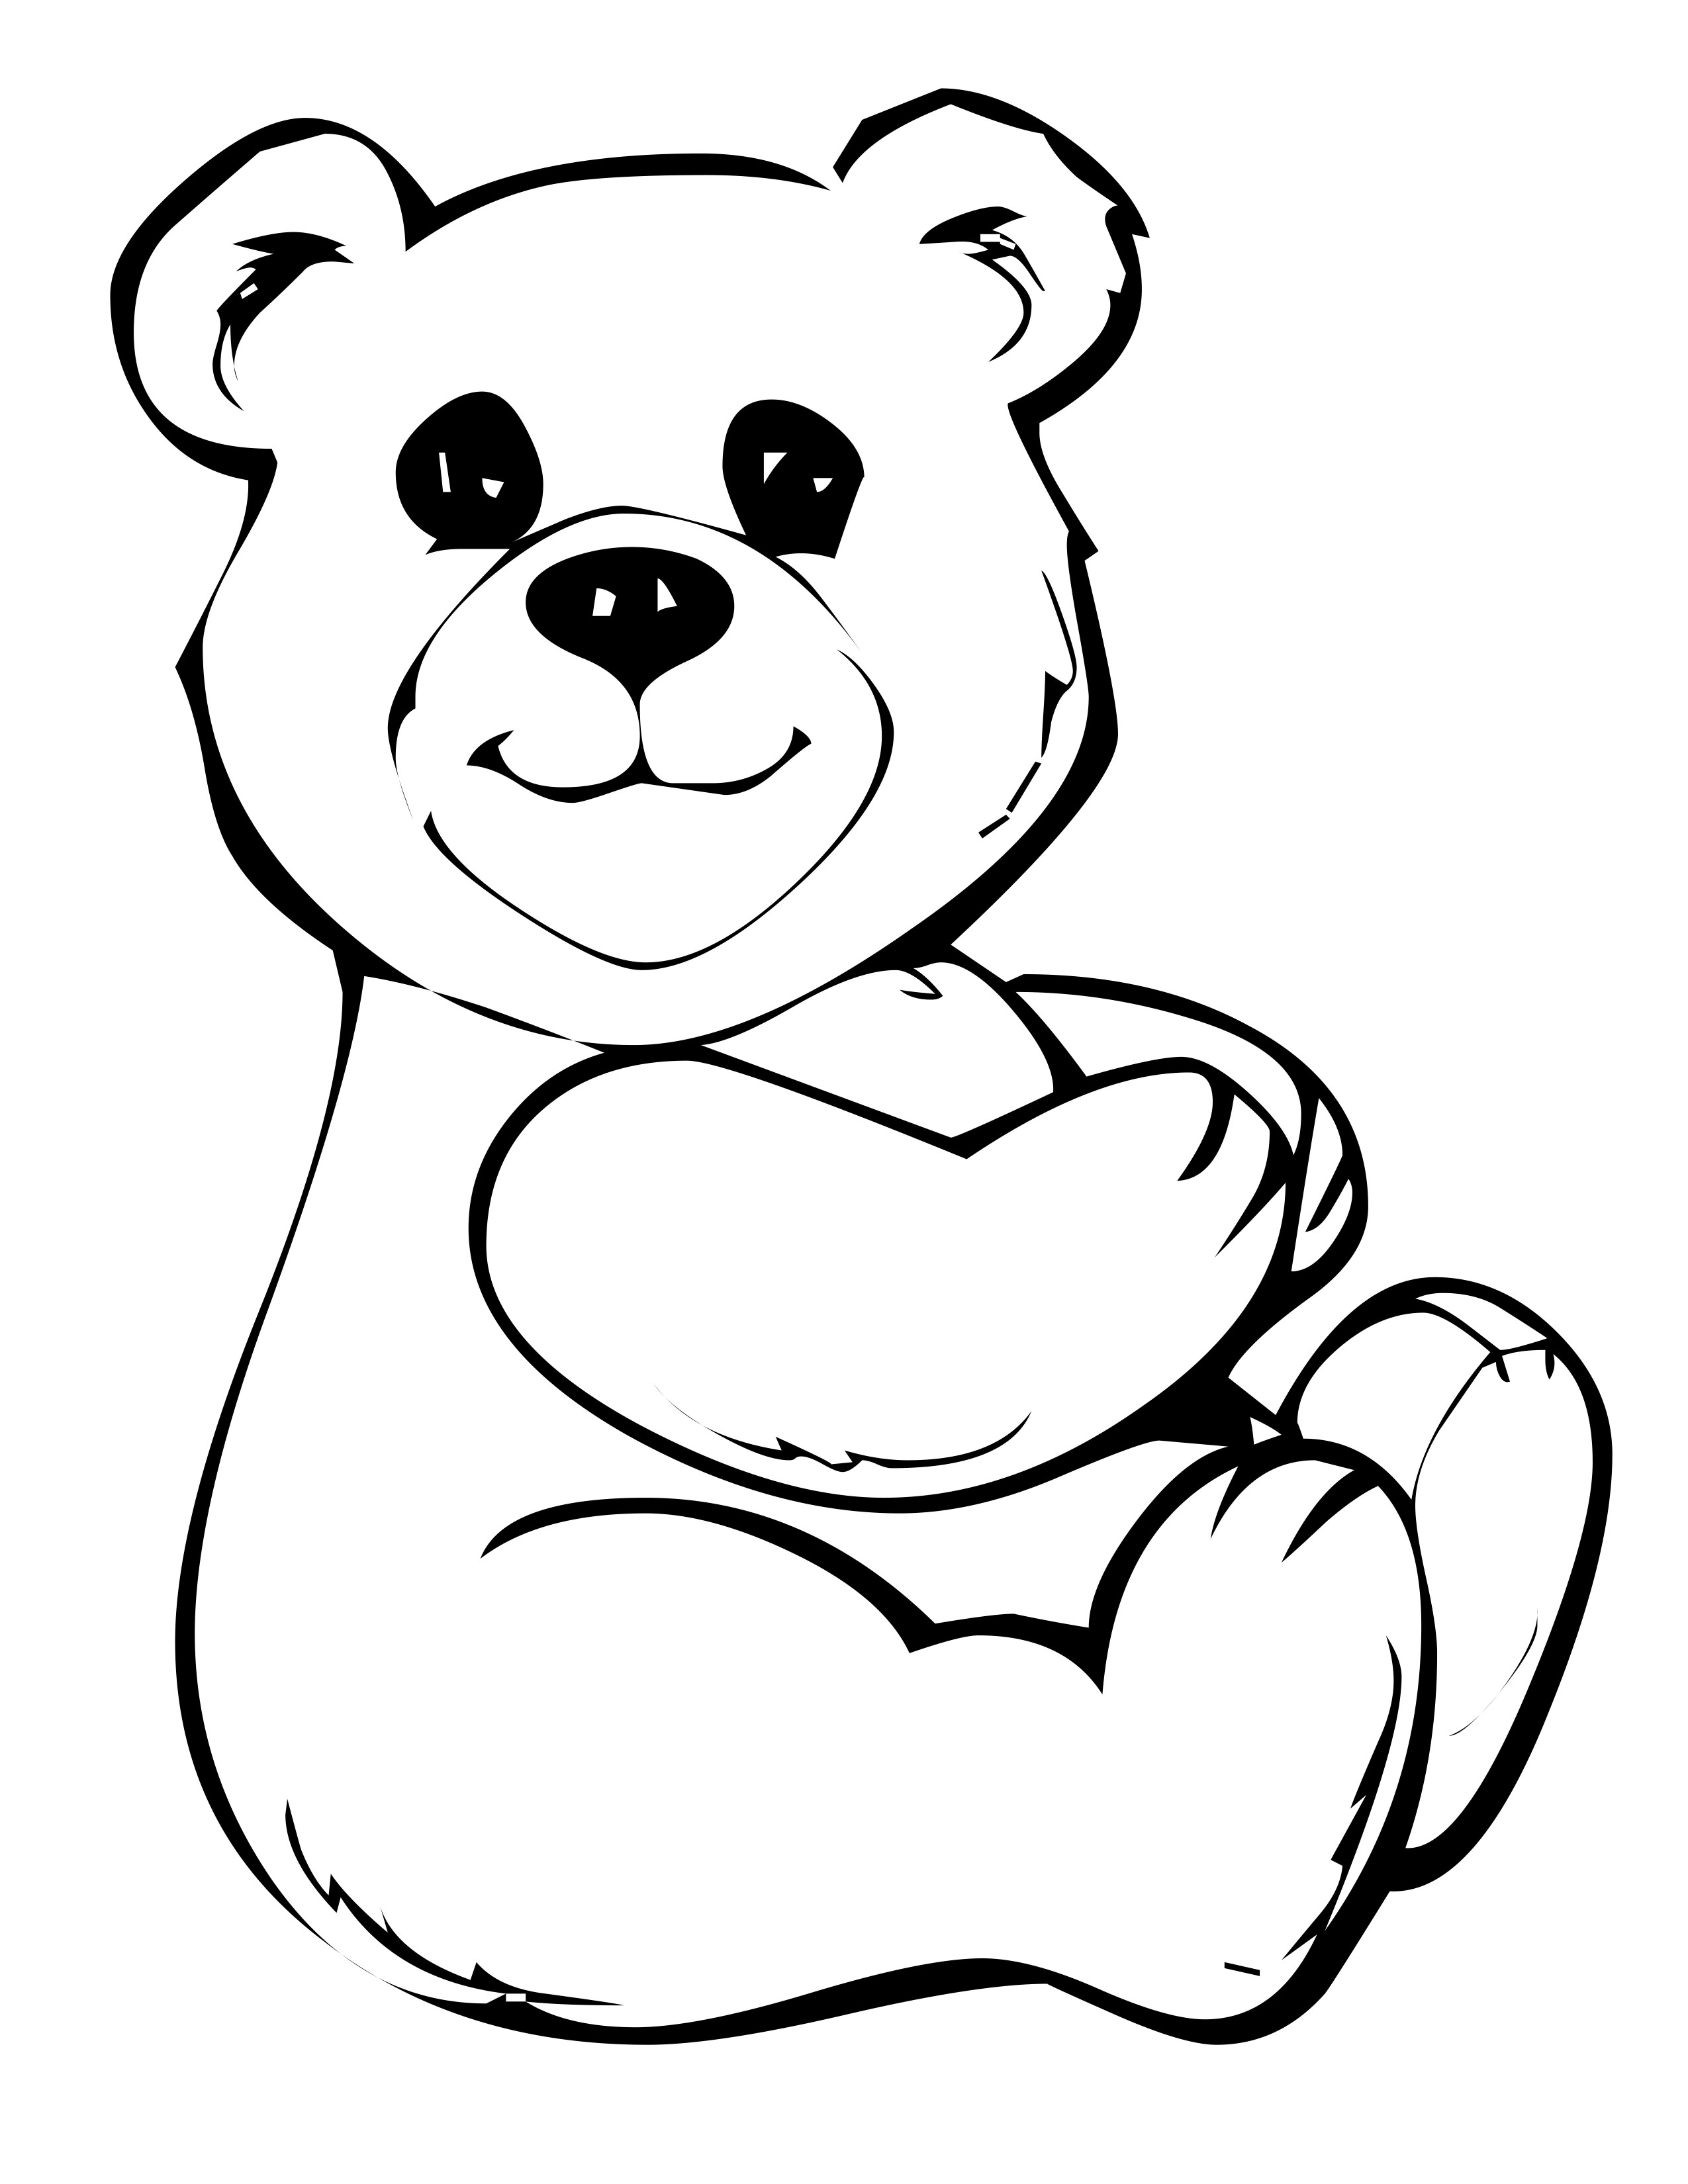 coloring picture bear top 10 free printable bear coloring pages online coloring picture bear